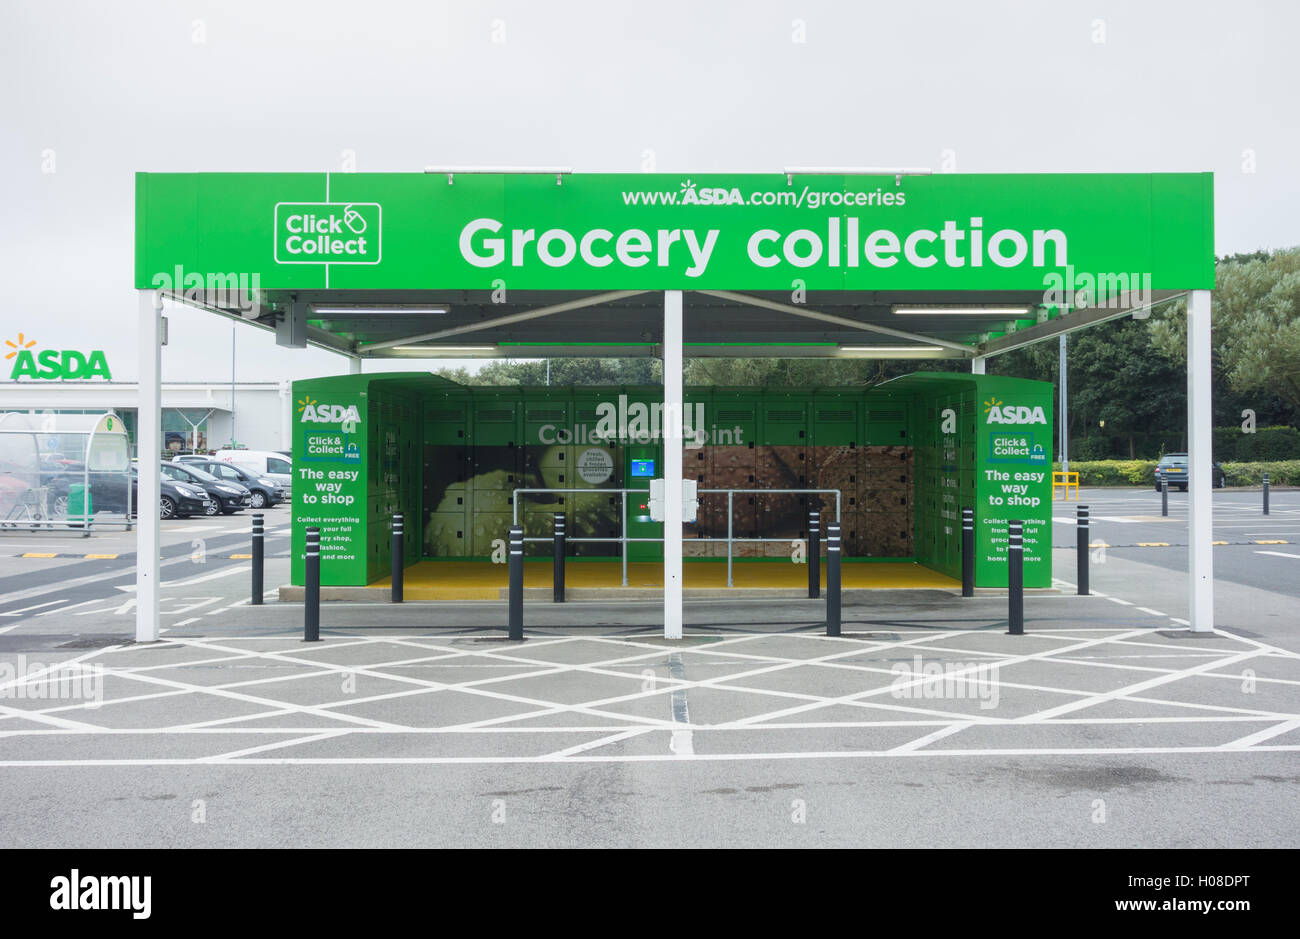 Click and collect grocery collection point in Asda store car park. Portrack, Stockton on tees. UK - Stock Image